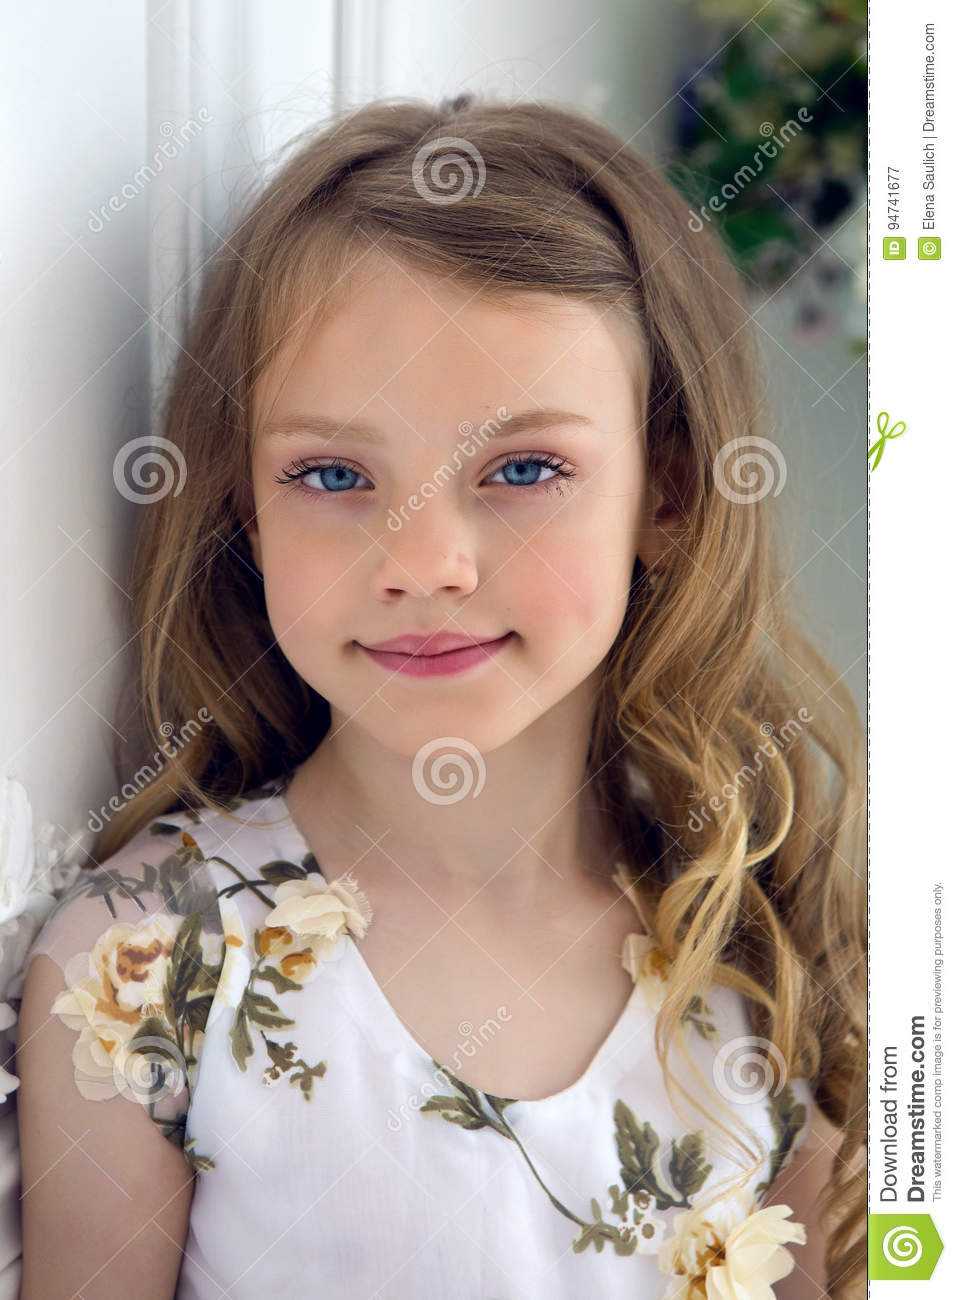 Portrait of a girl seven years old with blond hair and white dress